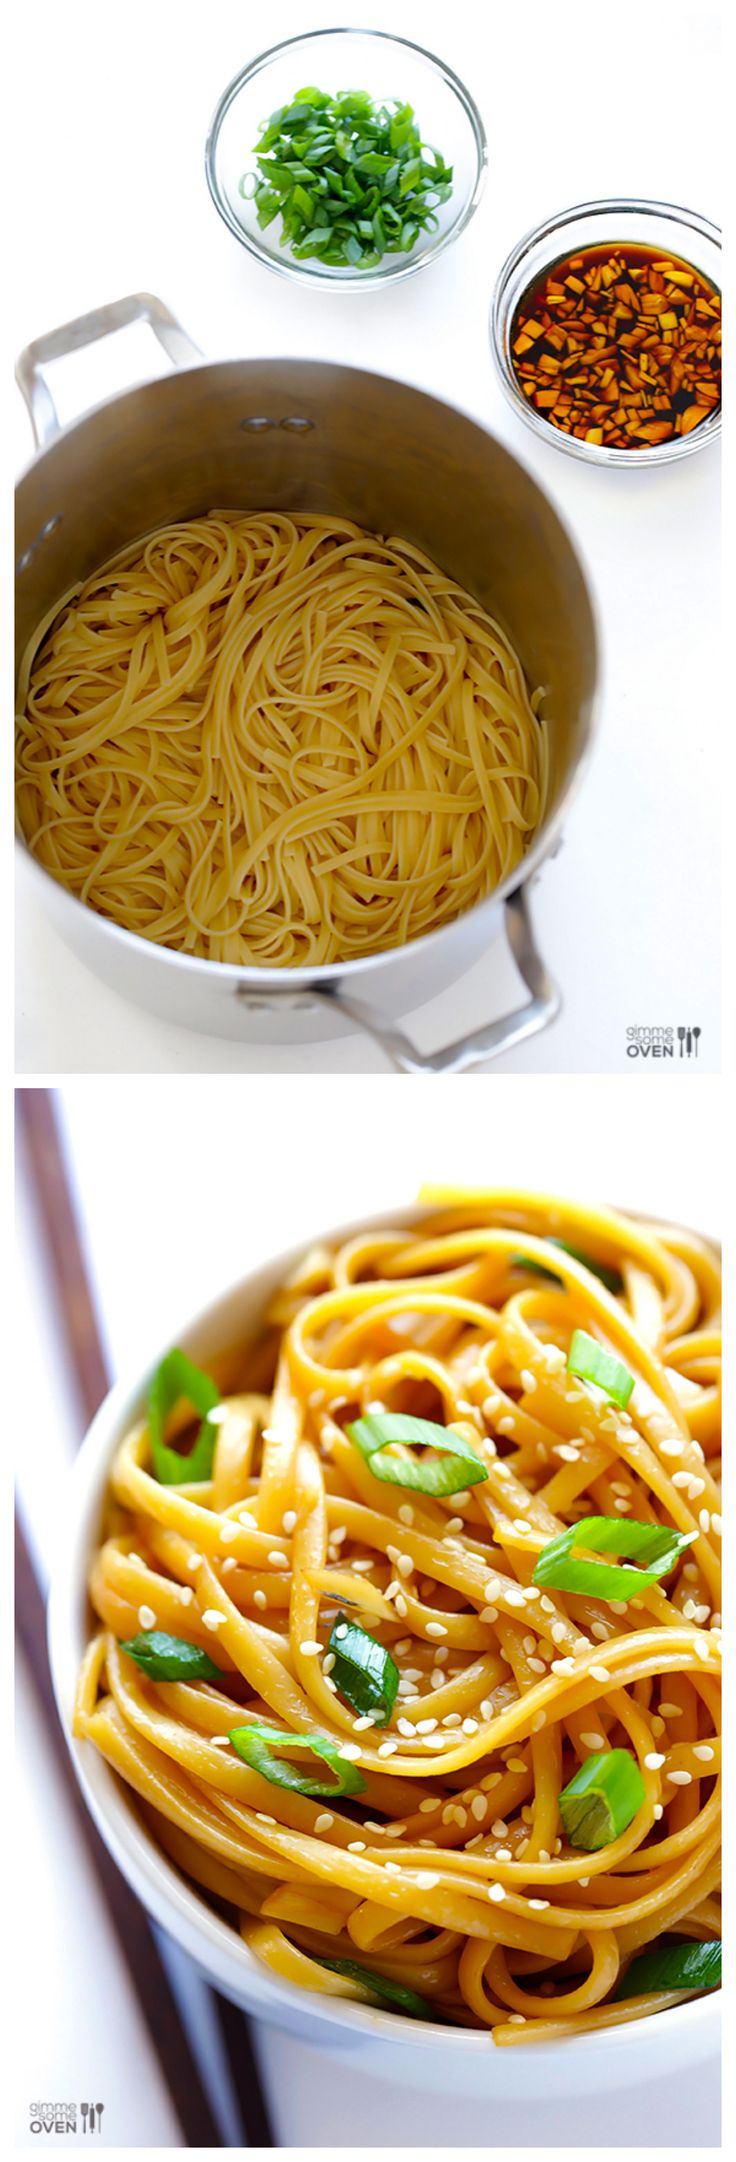 Sesame Noodles -- a quick and easy recipe that tastes great! Add veggies, meat or seafood too if you'd like! | gimmesomeoven.com